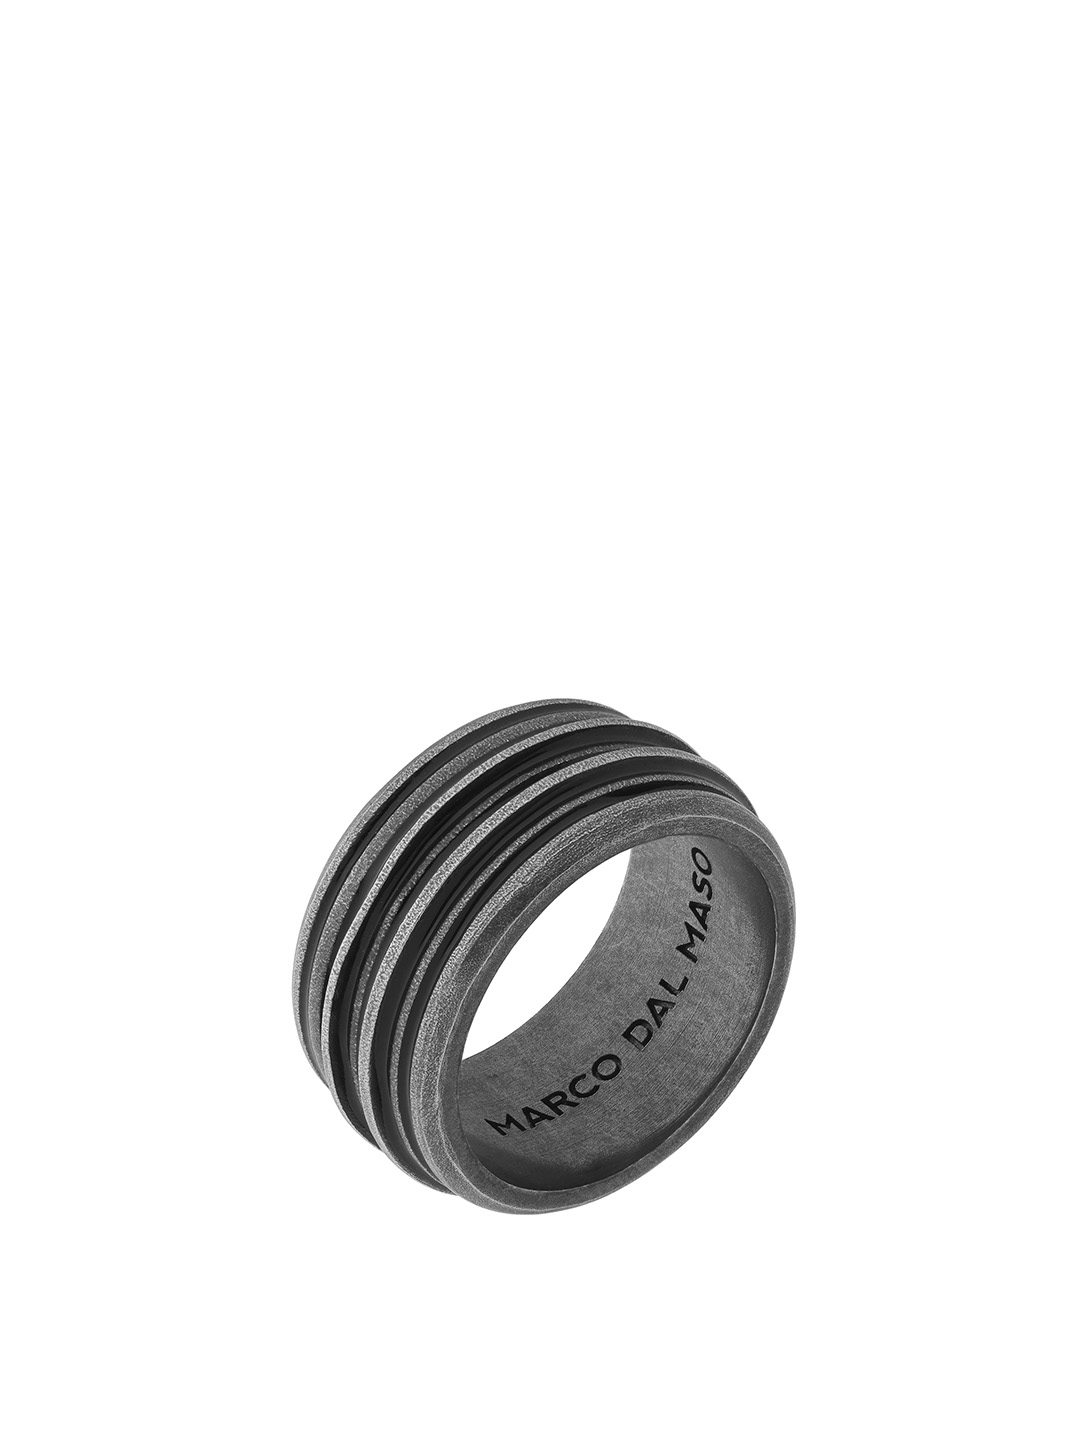 MARCO DAL MASO Acies Double Oxidized Silver Ring Men's Black